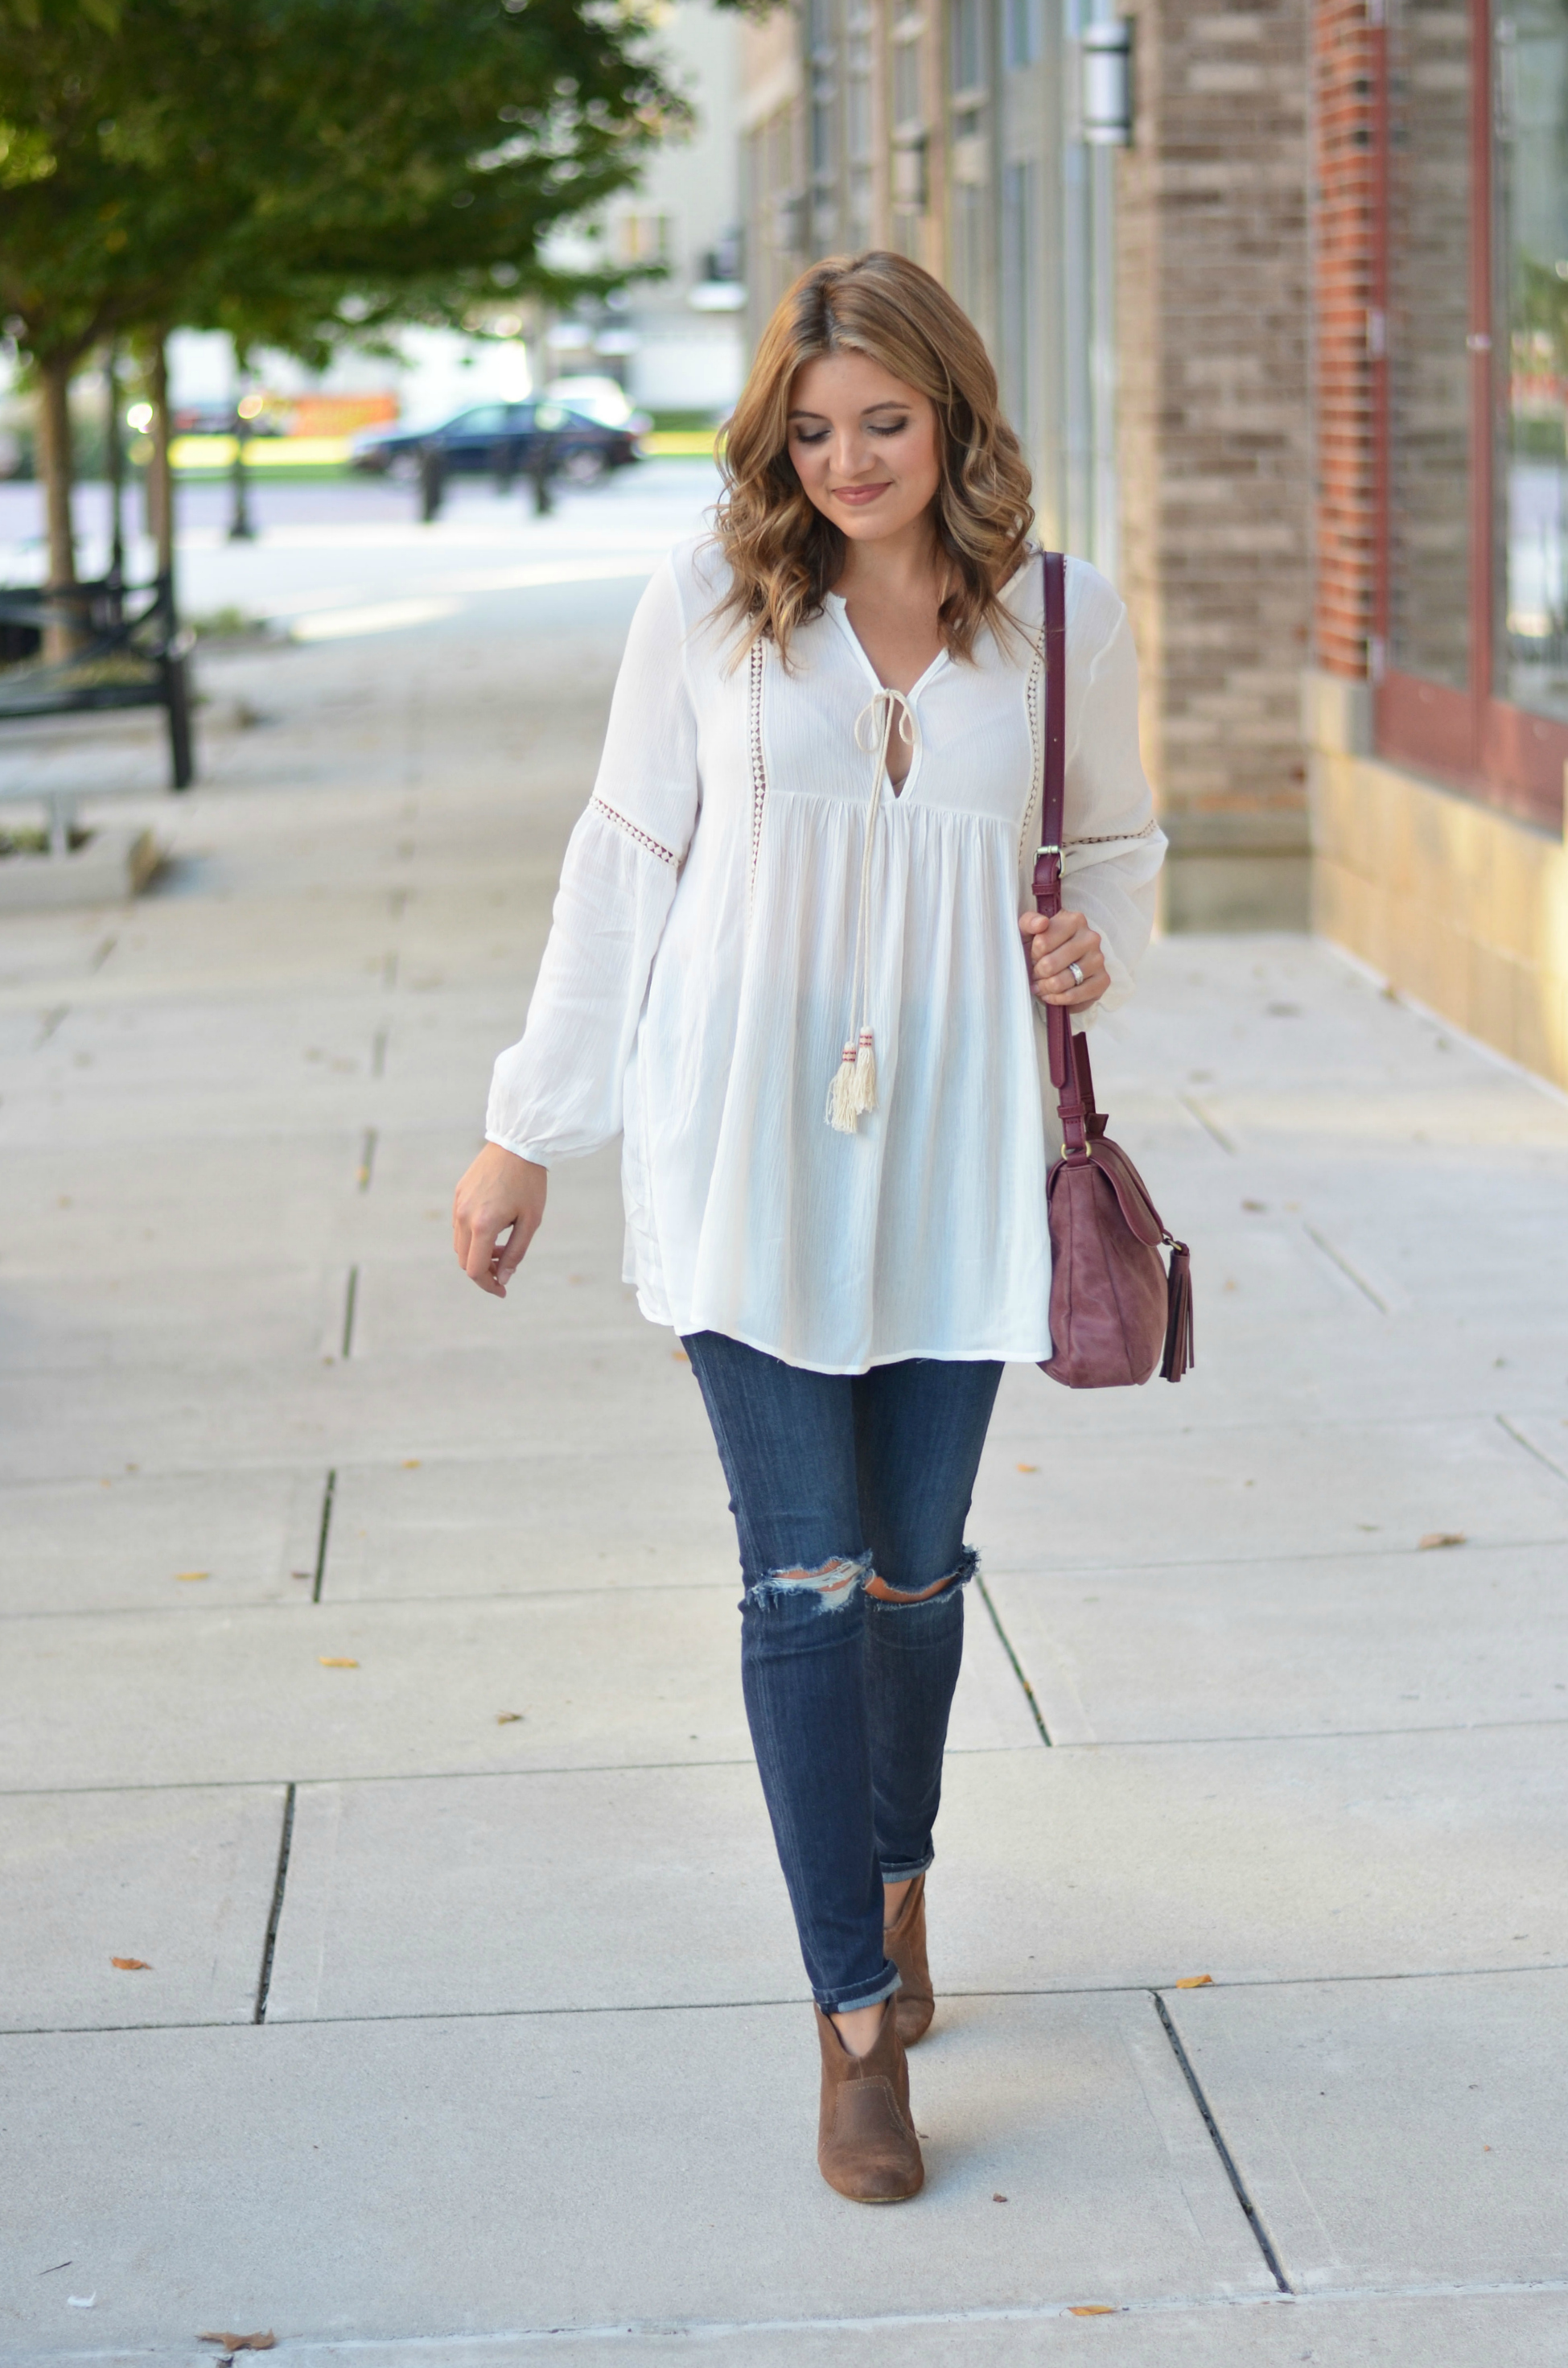 peasant top outfit - white peasant top with distressed skinny jeans and tan booties | www.bylaurenm.com